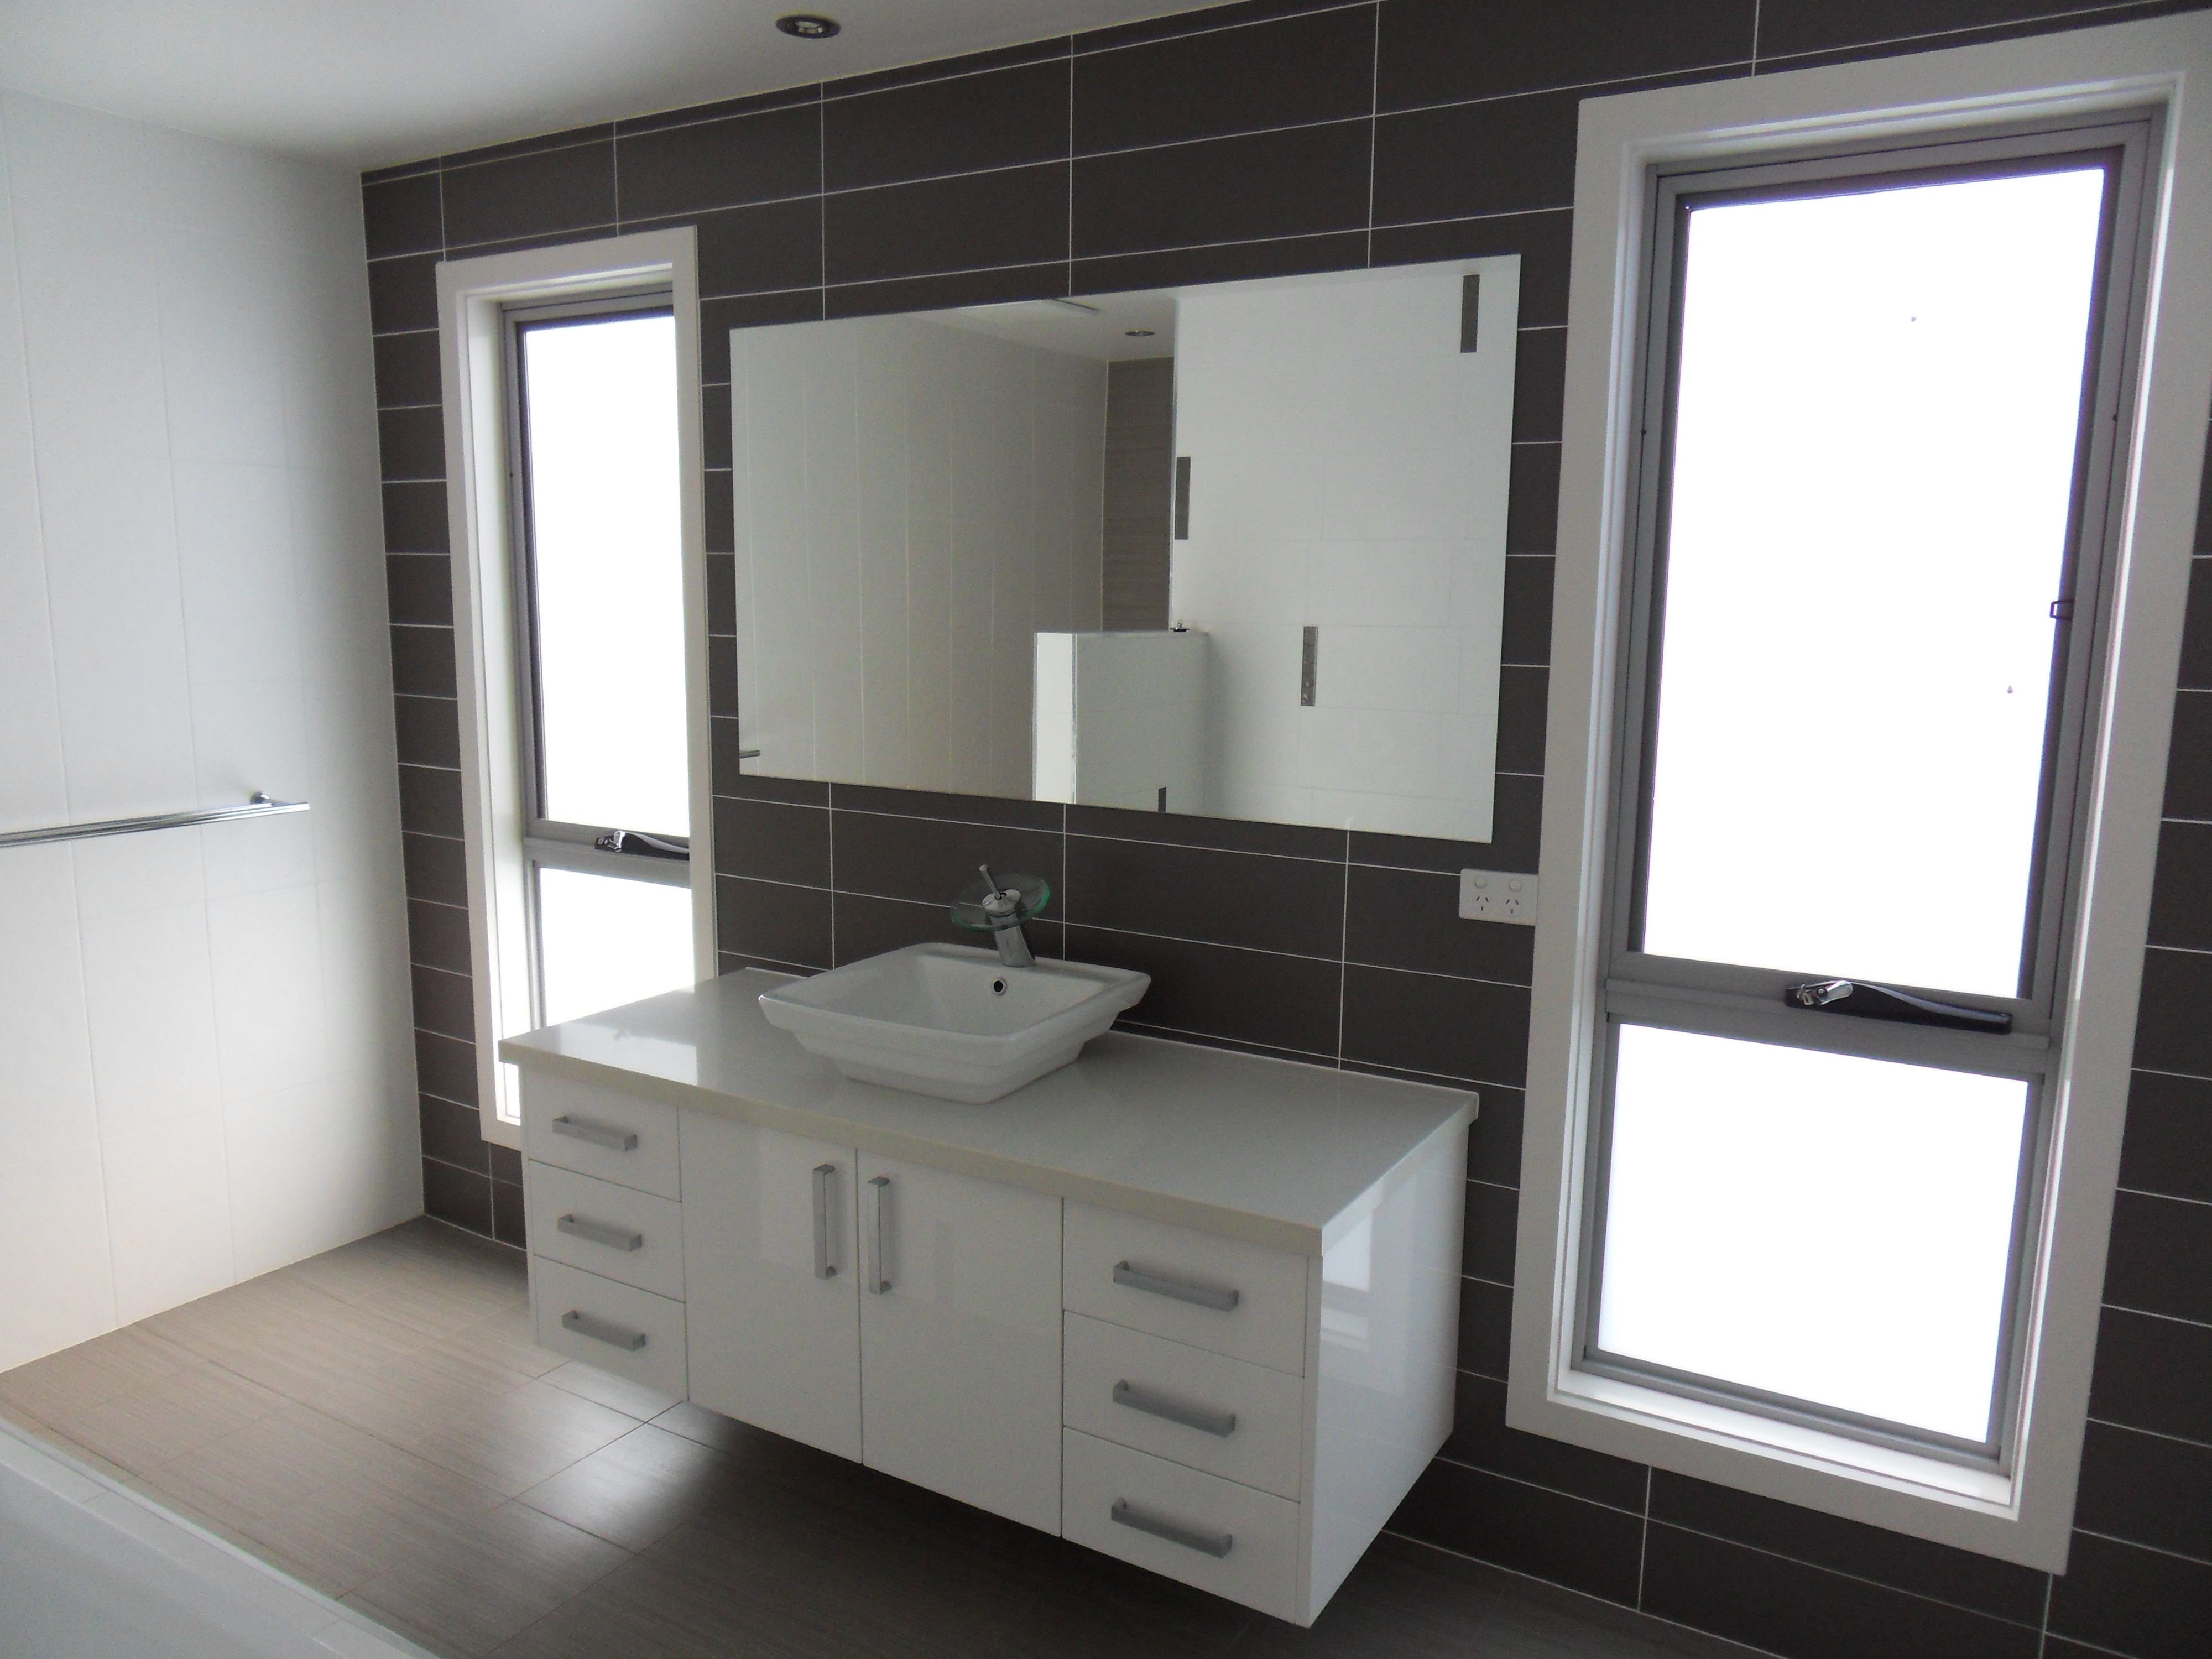 Our gallery kitchen and bathroom renovations canberra avado for Bathroom renovations canberra